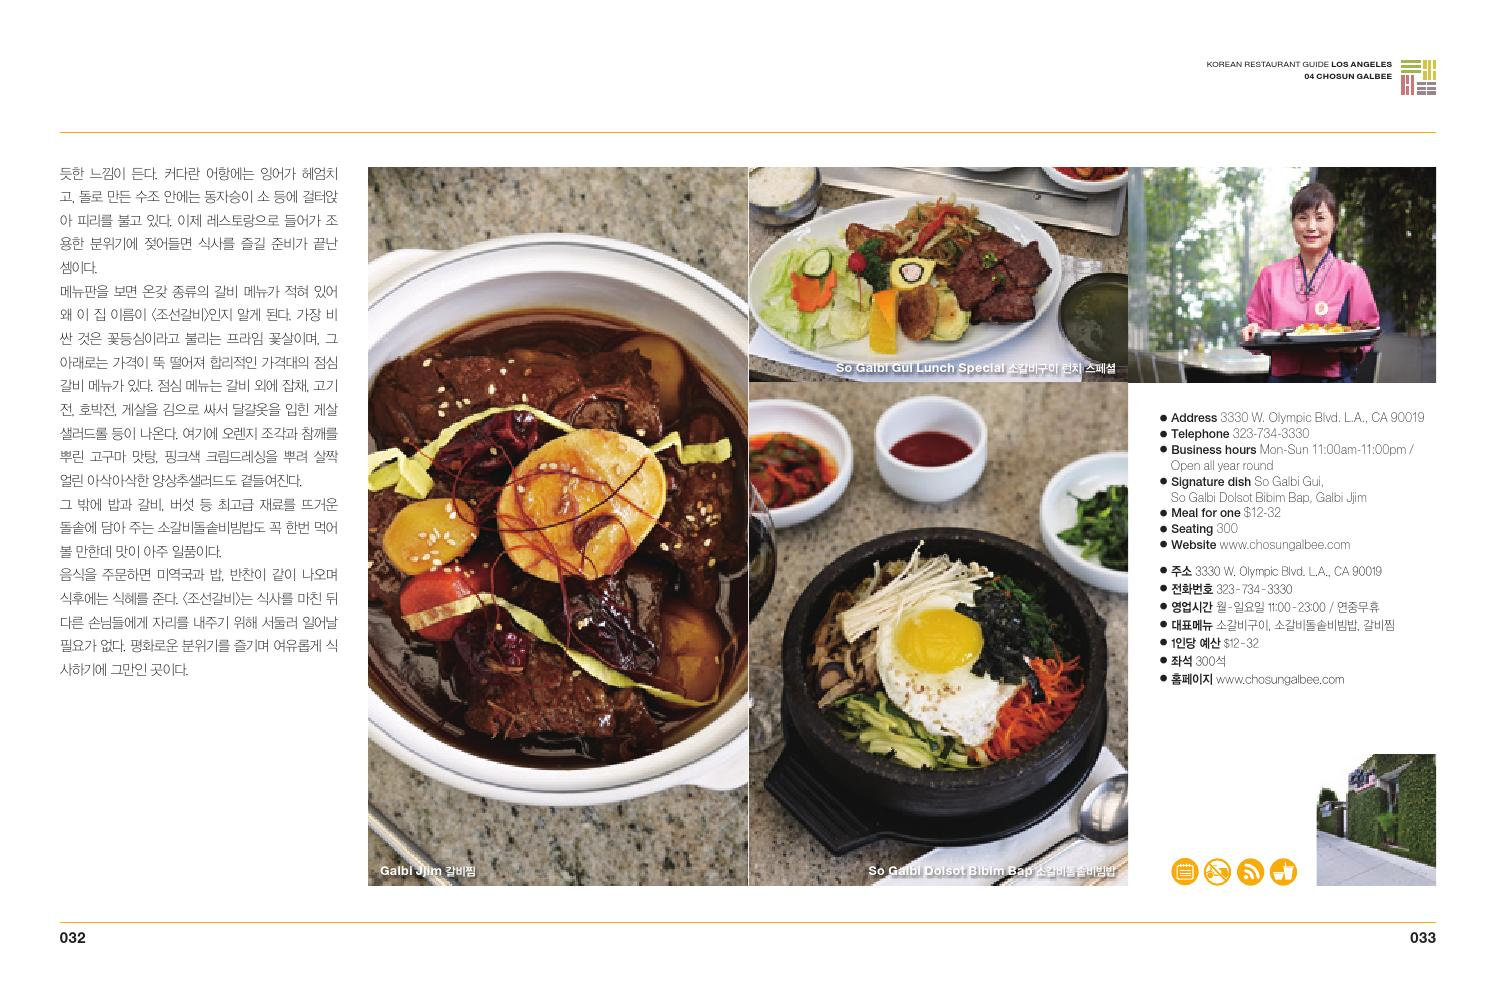 Los angeles korean restaurant guide by thetasteof korea for Restaurant guide